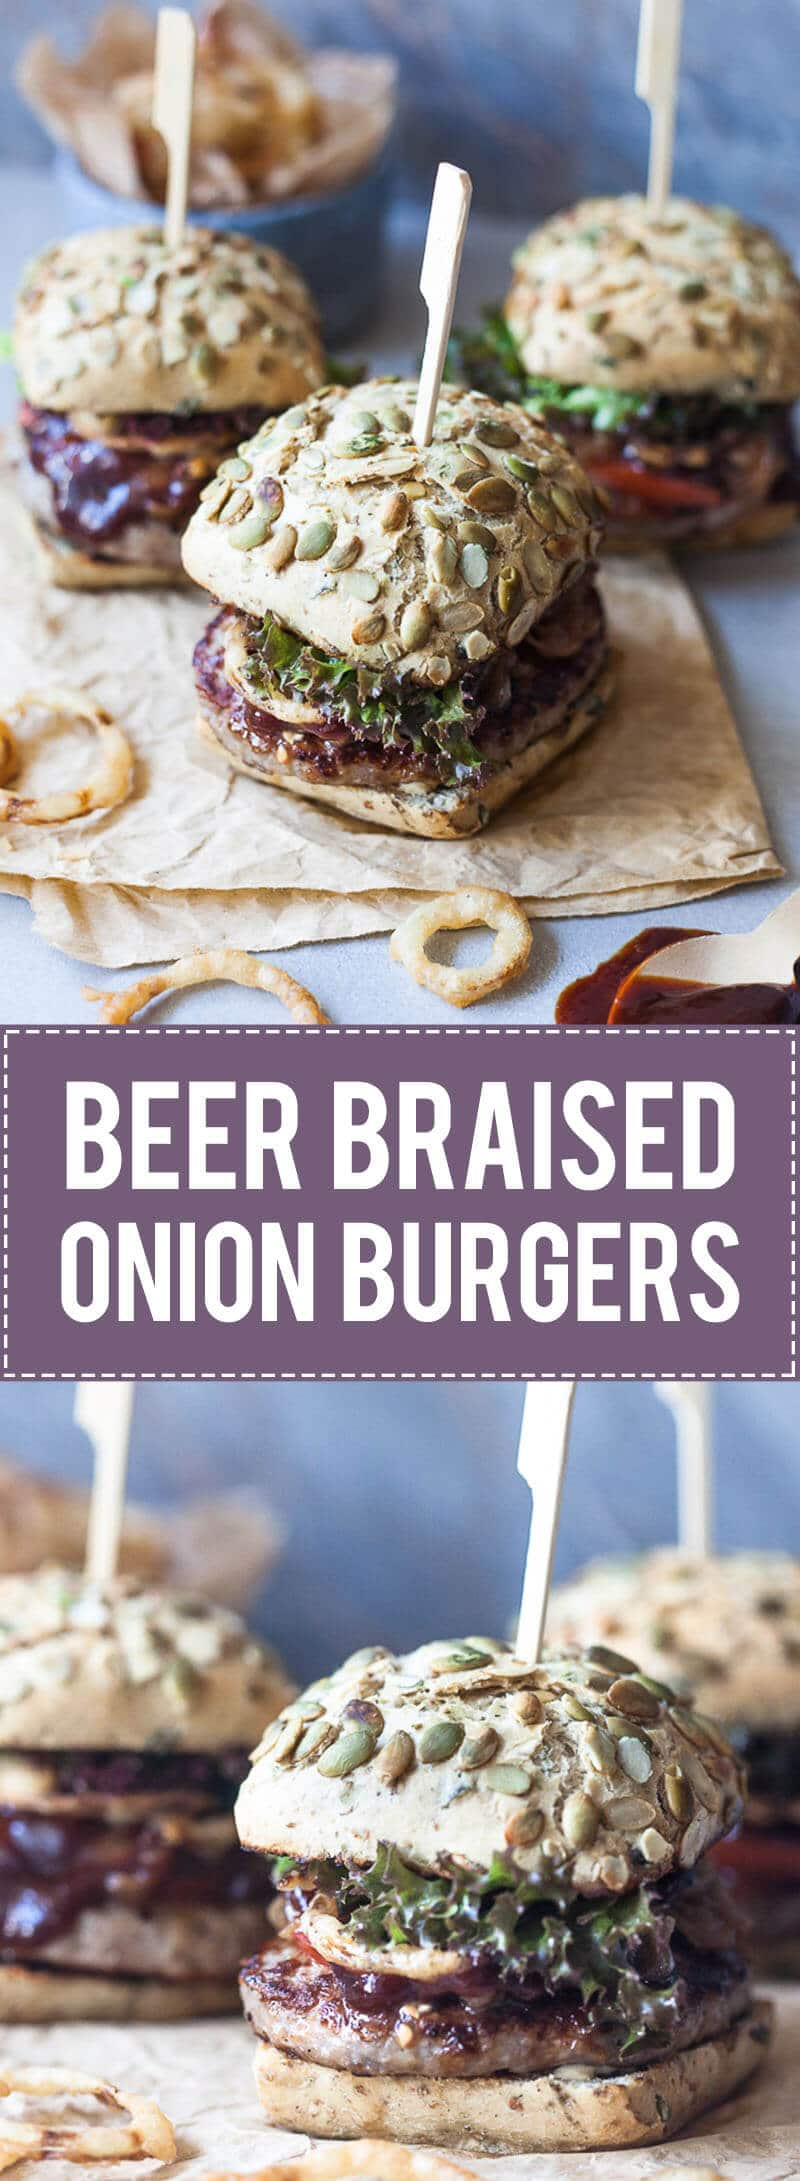 Beer Braised Onion Burgers are the perfect grill recipe! Topped with Crispy Onion Rings for extra crunch.   www.vibrantplate.com